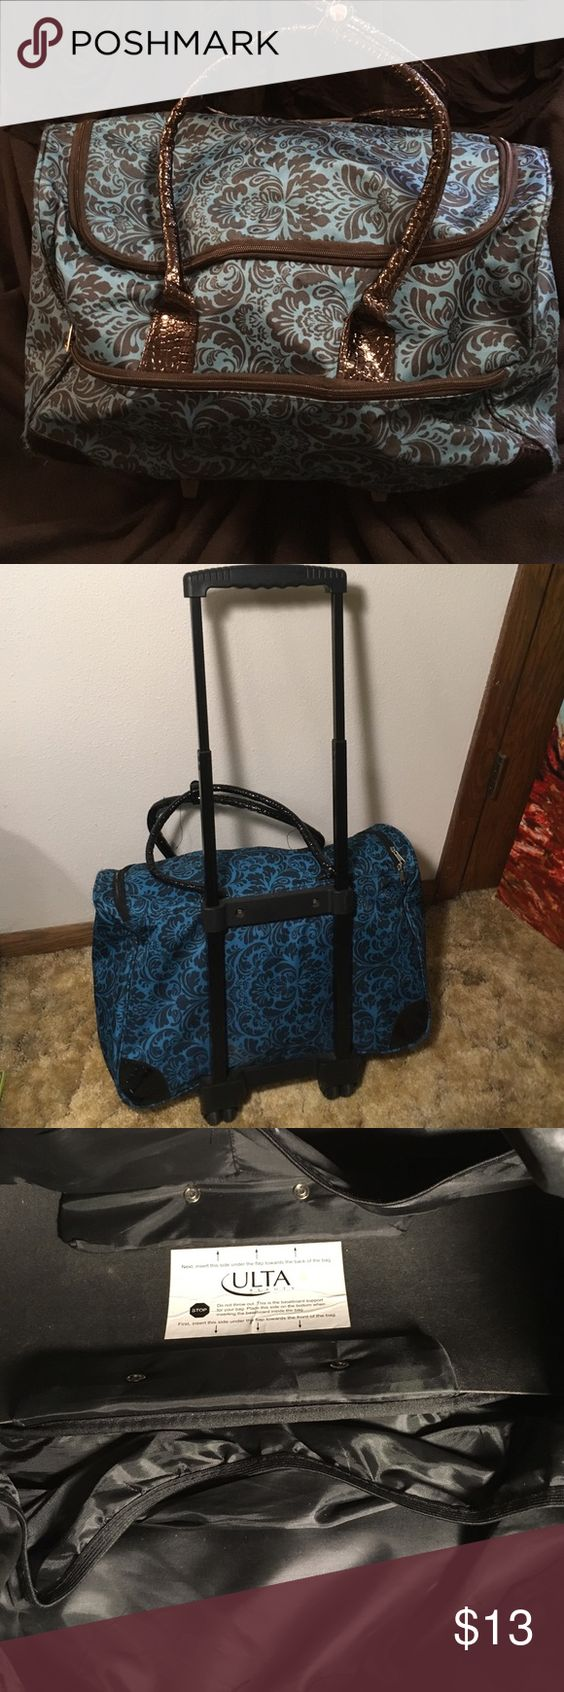 Teal weekend bag Cary on sized weekend bag with wheels. Mild wear. Ulta Bags Travel Bags